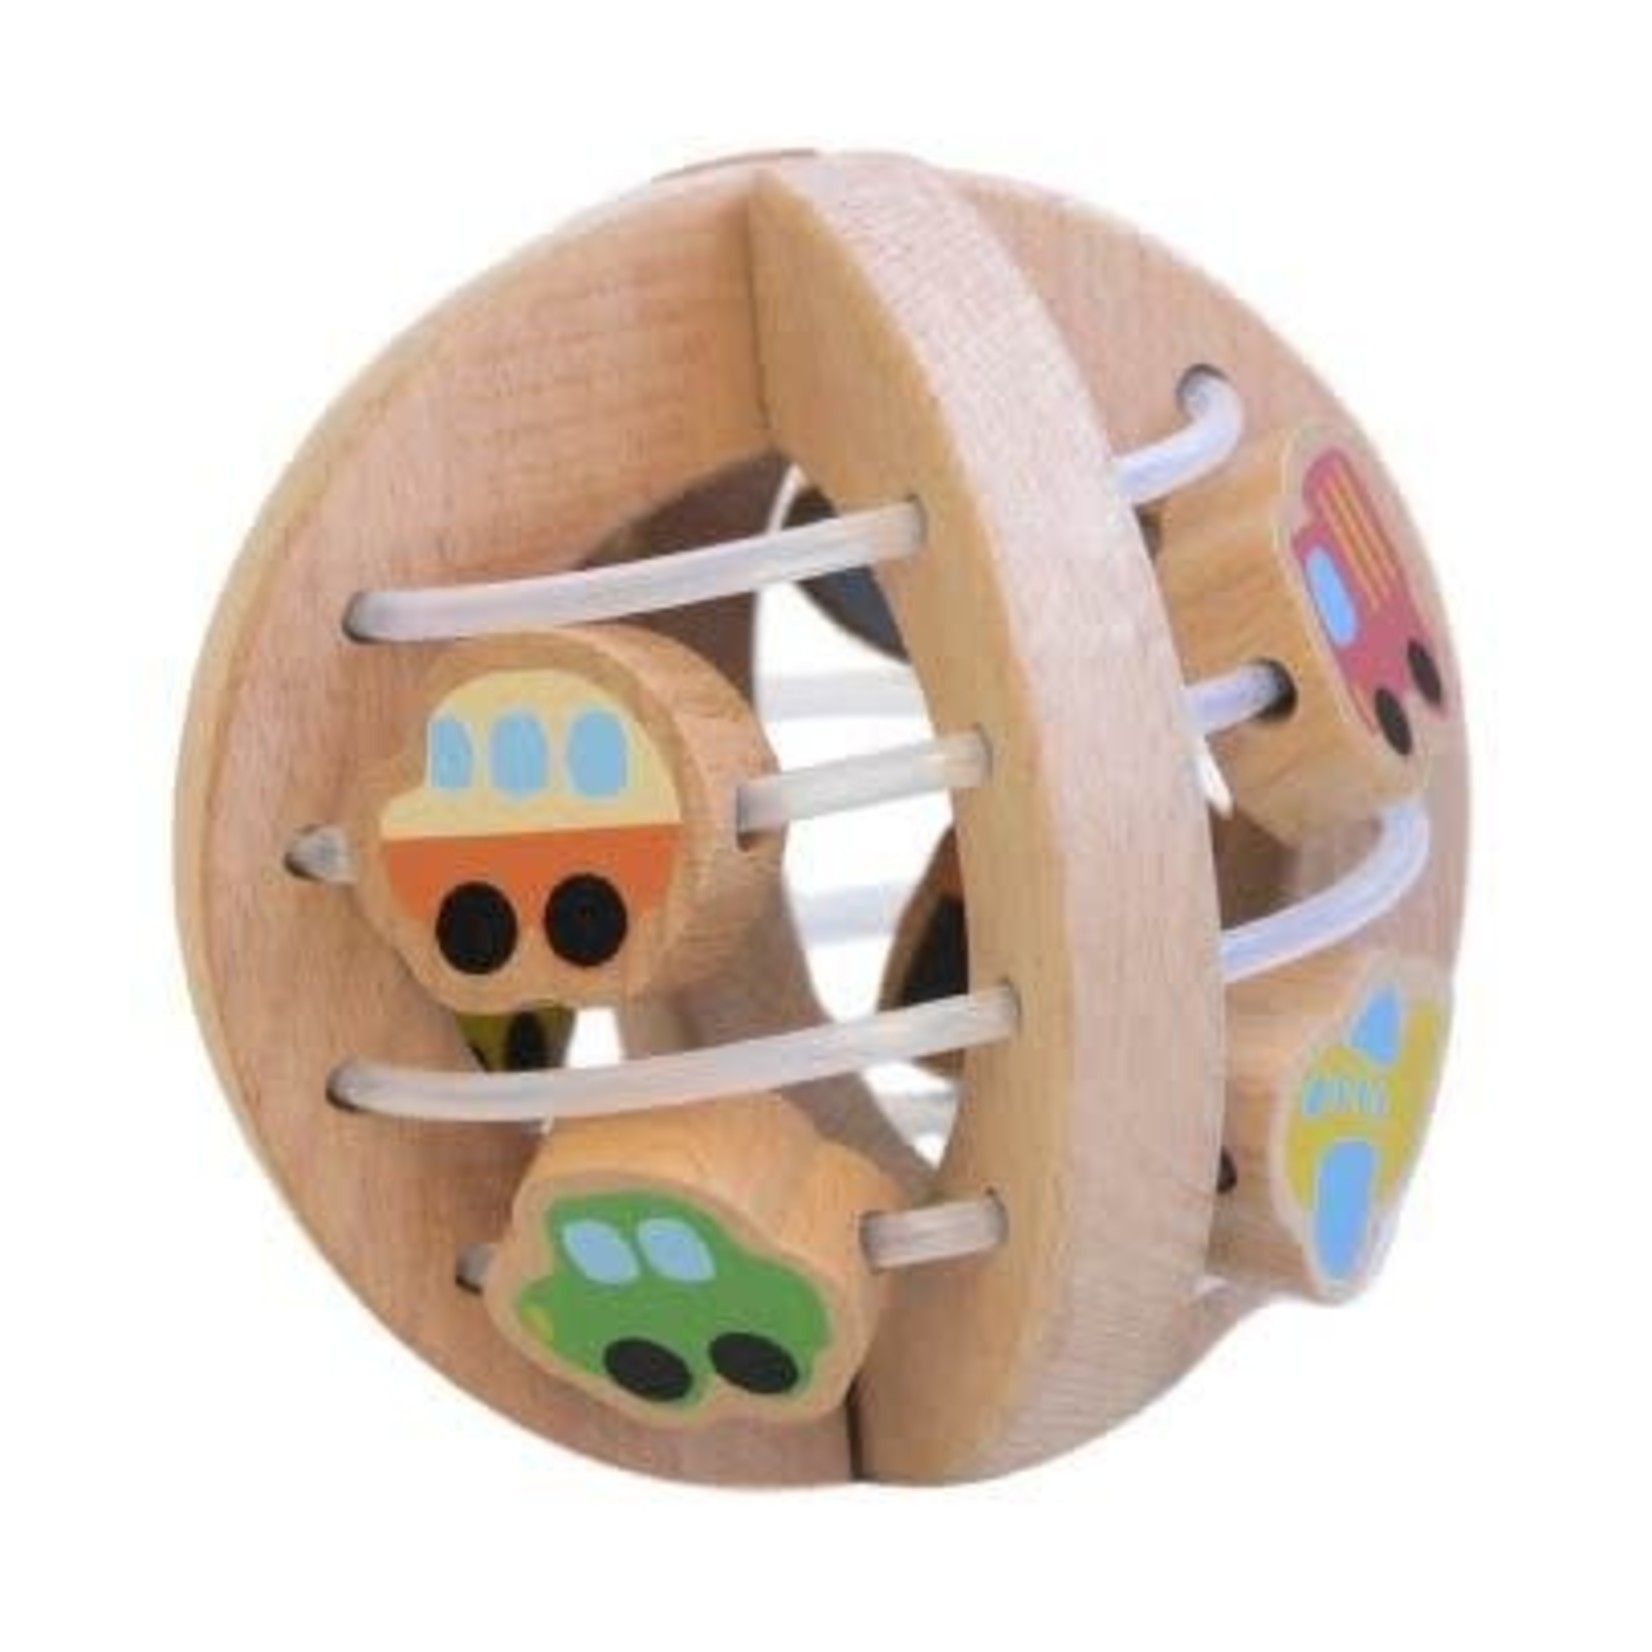 Baby Brands Discoveroo: Wooden Play Ball Traffic